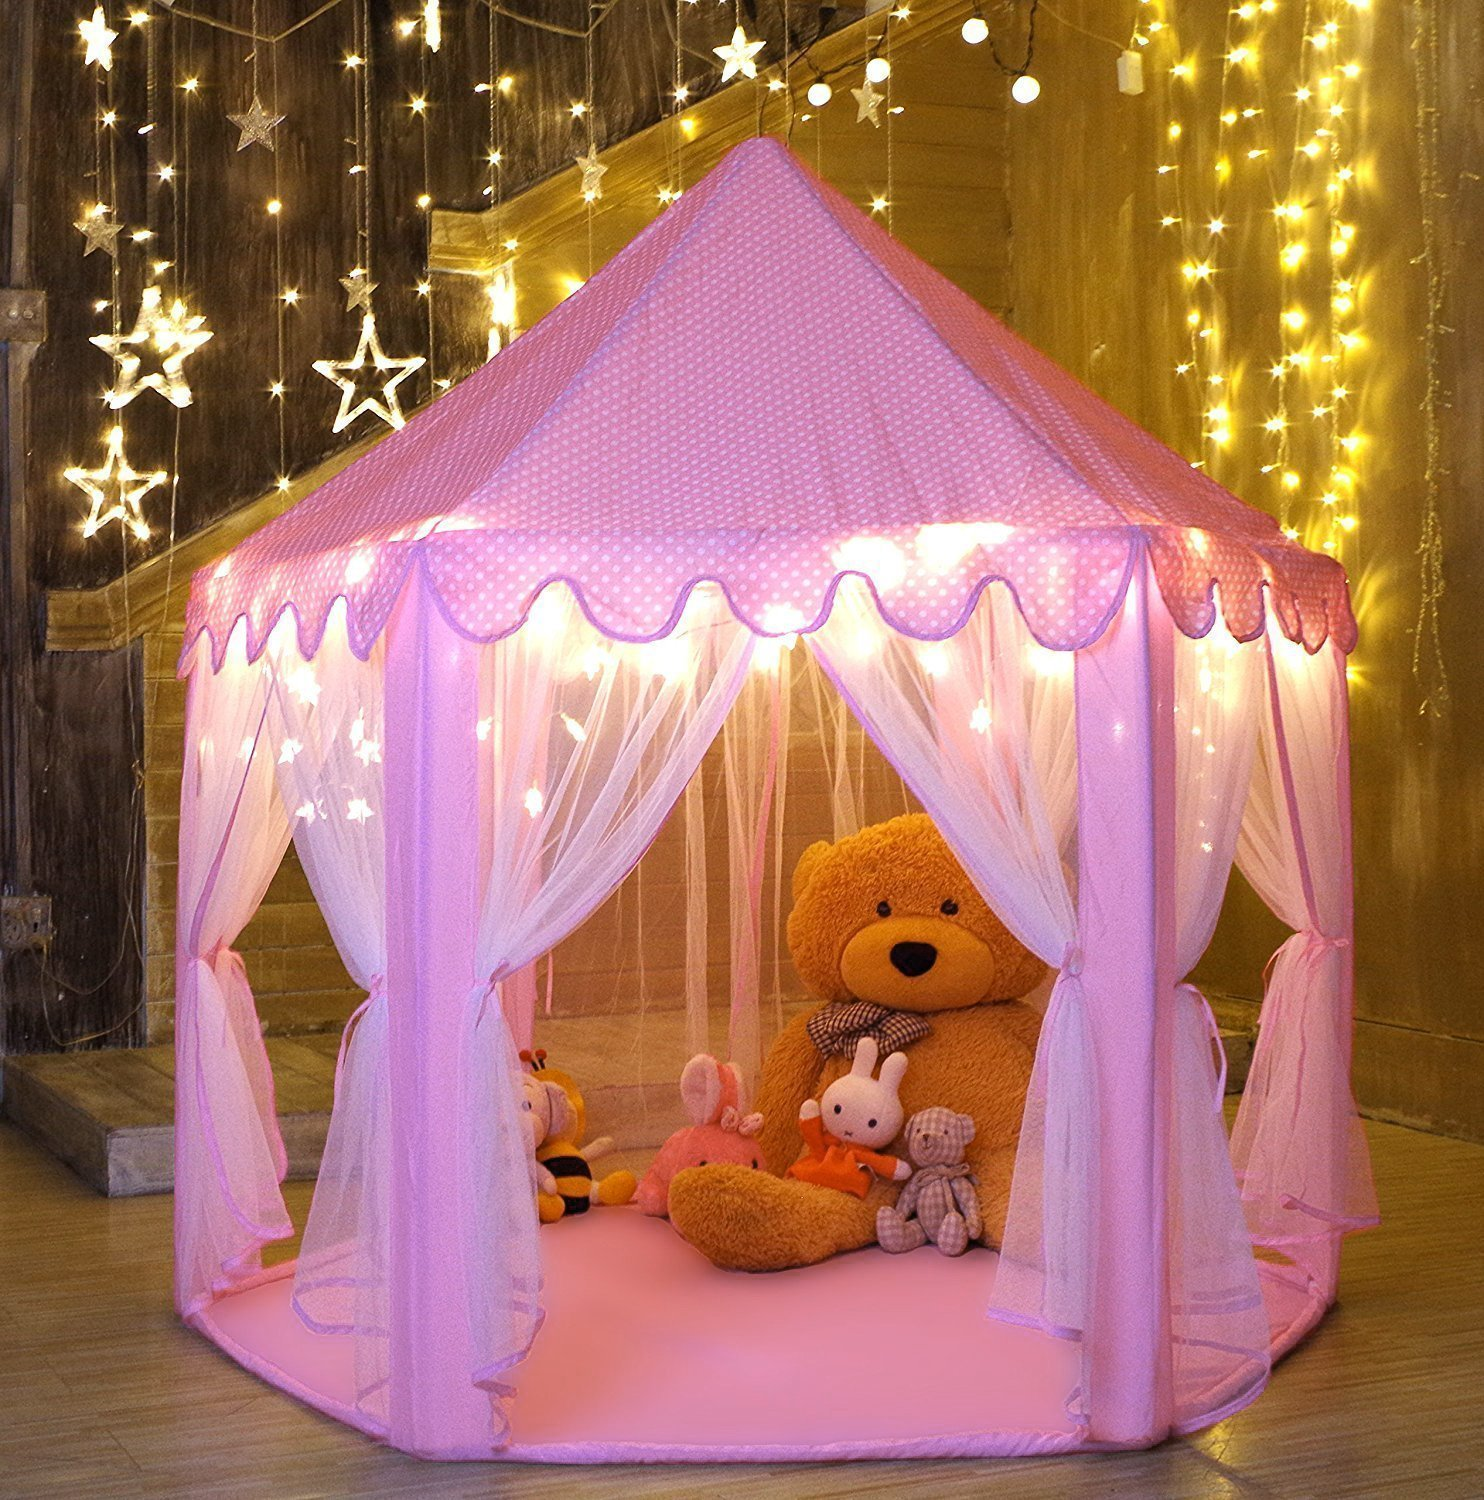 """Ejoyous Gift for Girls Age 5/6/7/8/9, Play Tent for Girls, Playhouse for Kid, Princess Castle Game for Indoor Outdoor with Star LED Lights, Large, Pink, 40""""40"""""""